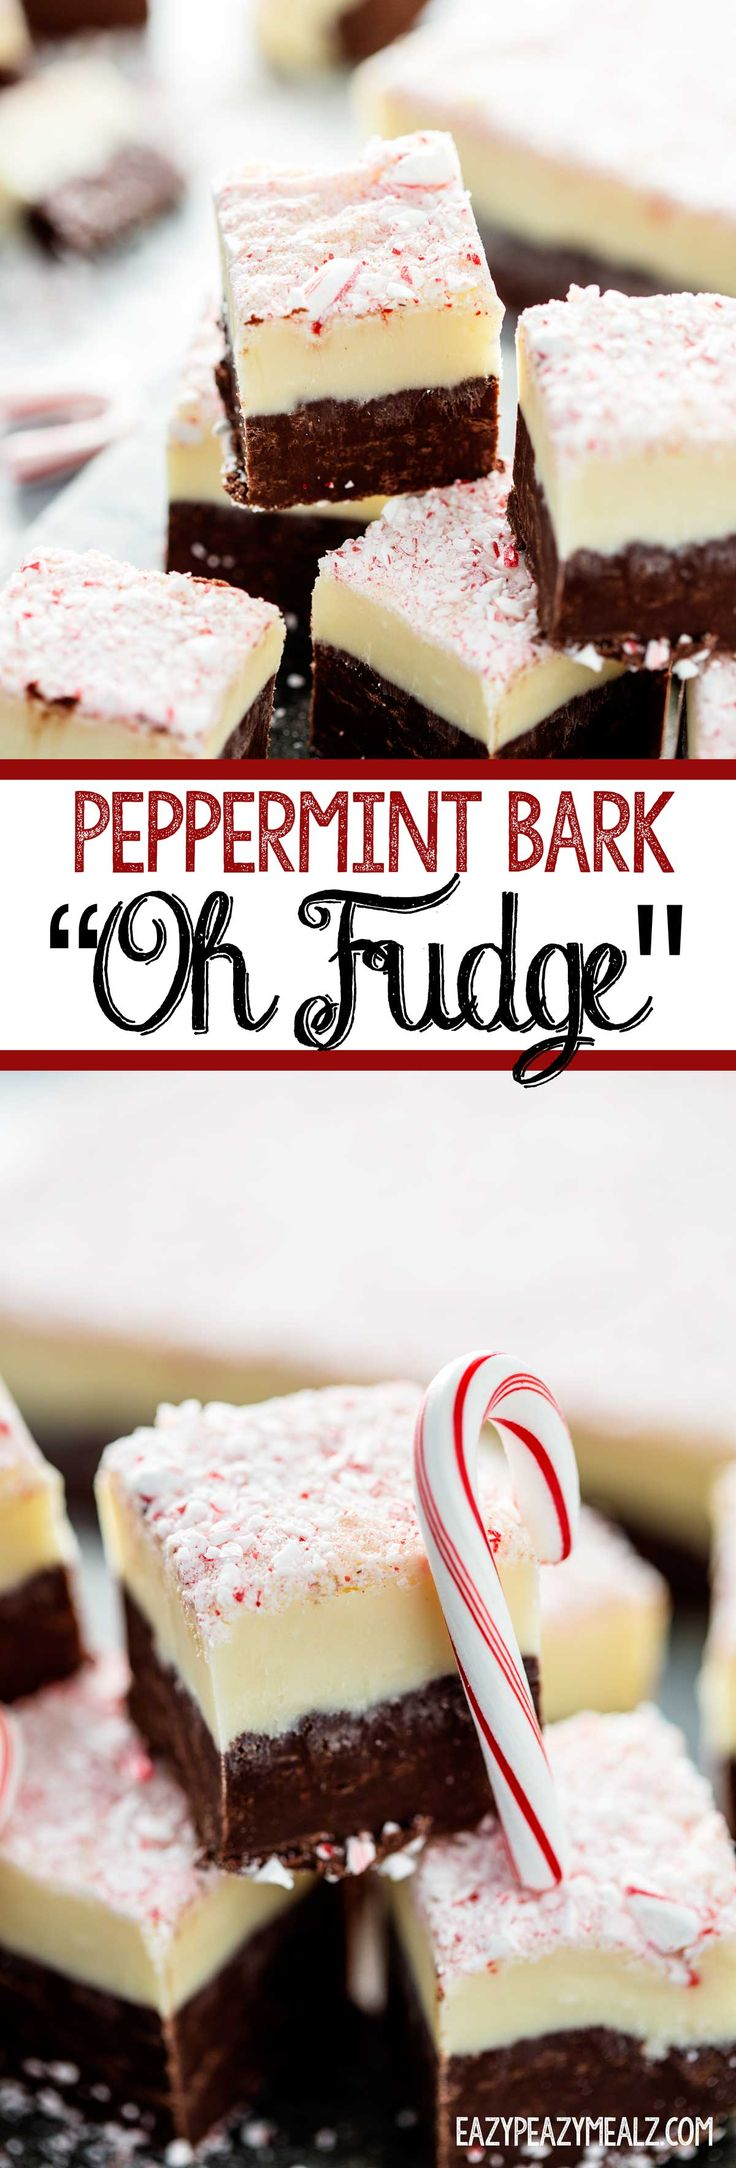 """Peppermint Bark """"Oh Fudge!"""" is perfect for the holidays and so easy to make.  #ad - Eazy Peazy Mealz"""